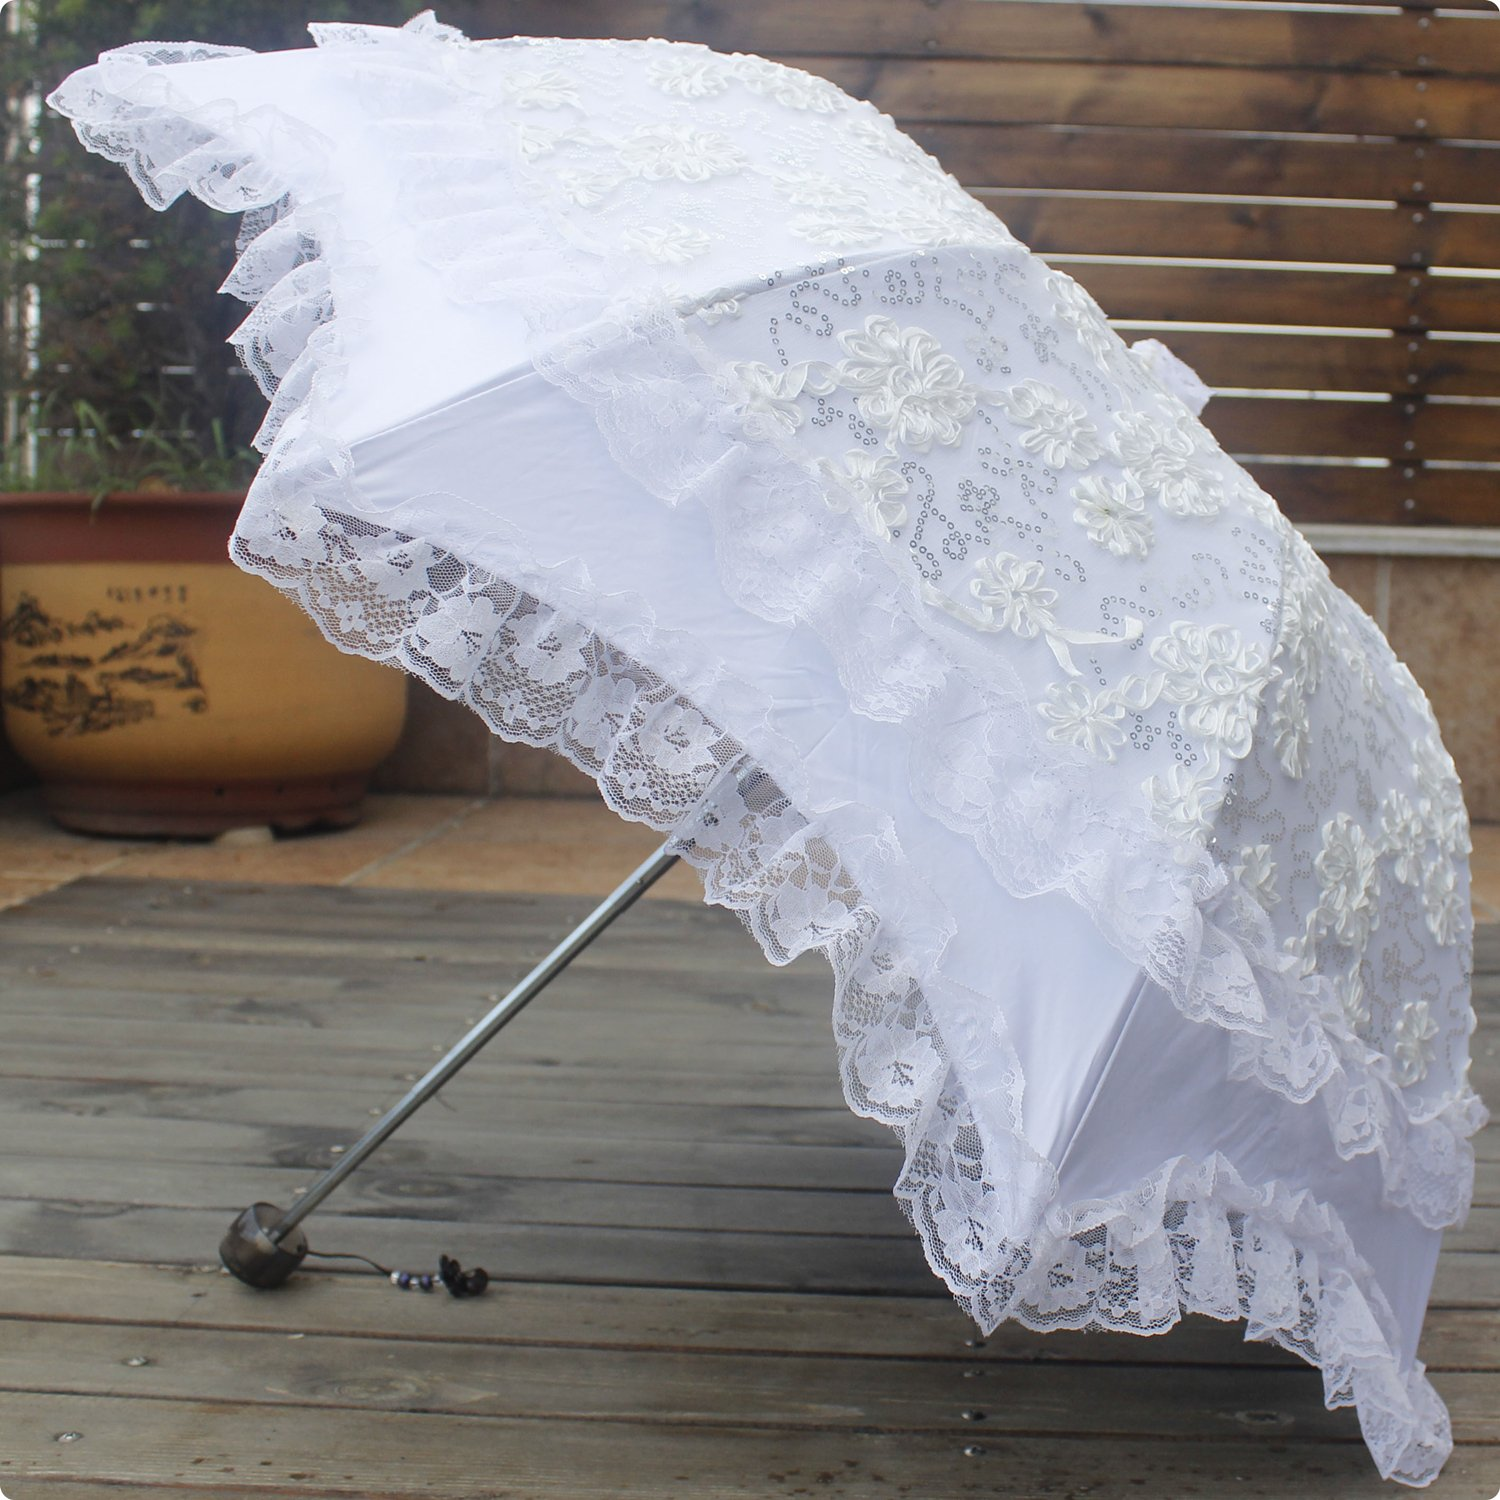 Vintage Style Parasols and Umbrellas Honeystore Mushroom Umbrellas Three Folding Vintage Lace Parasol Bride Umbrella $34.69 AT vintagedancer.com